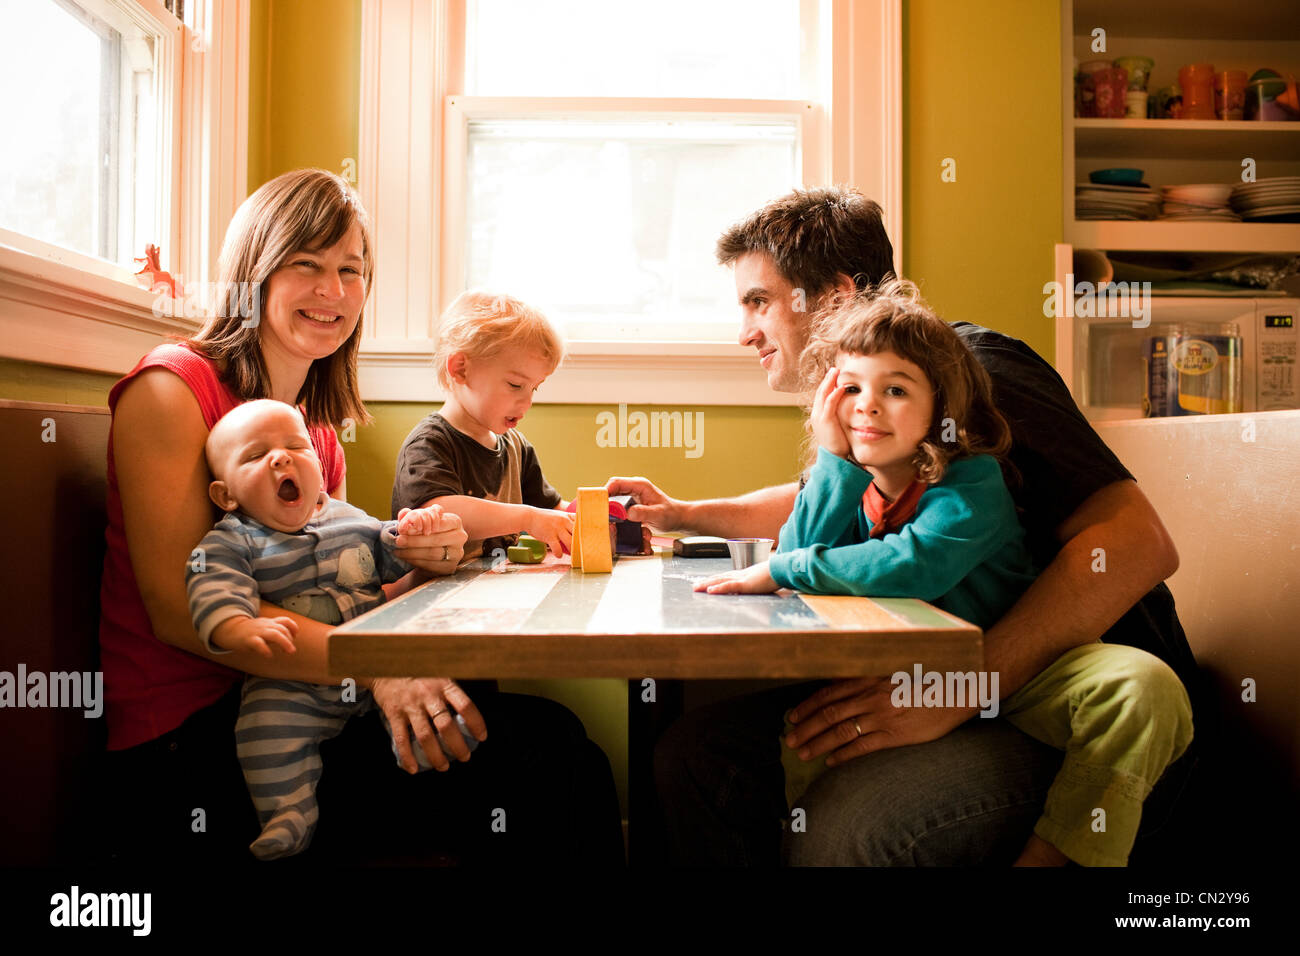 Family sitting at kitchen table - Stock Image